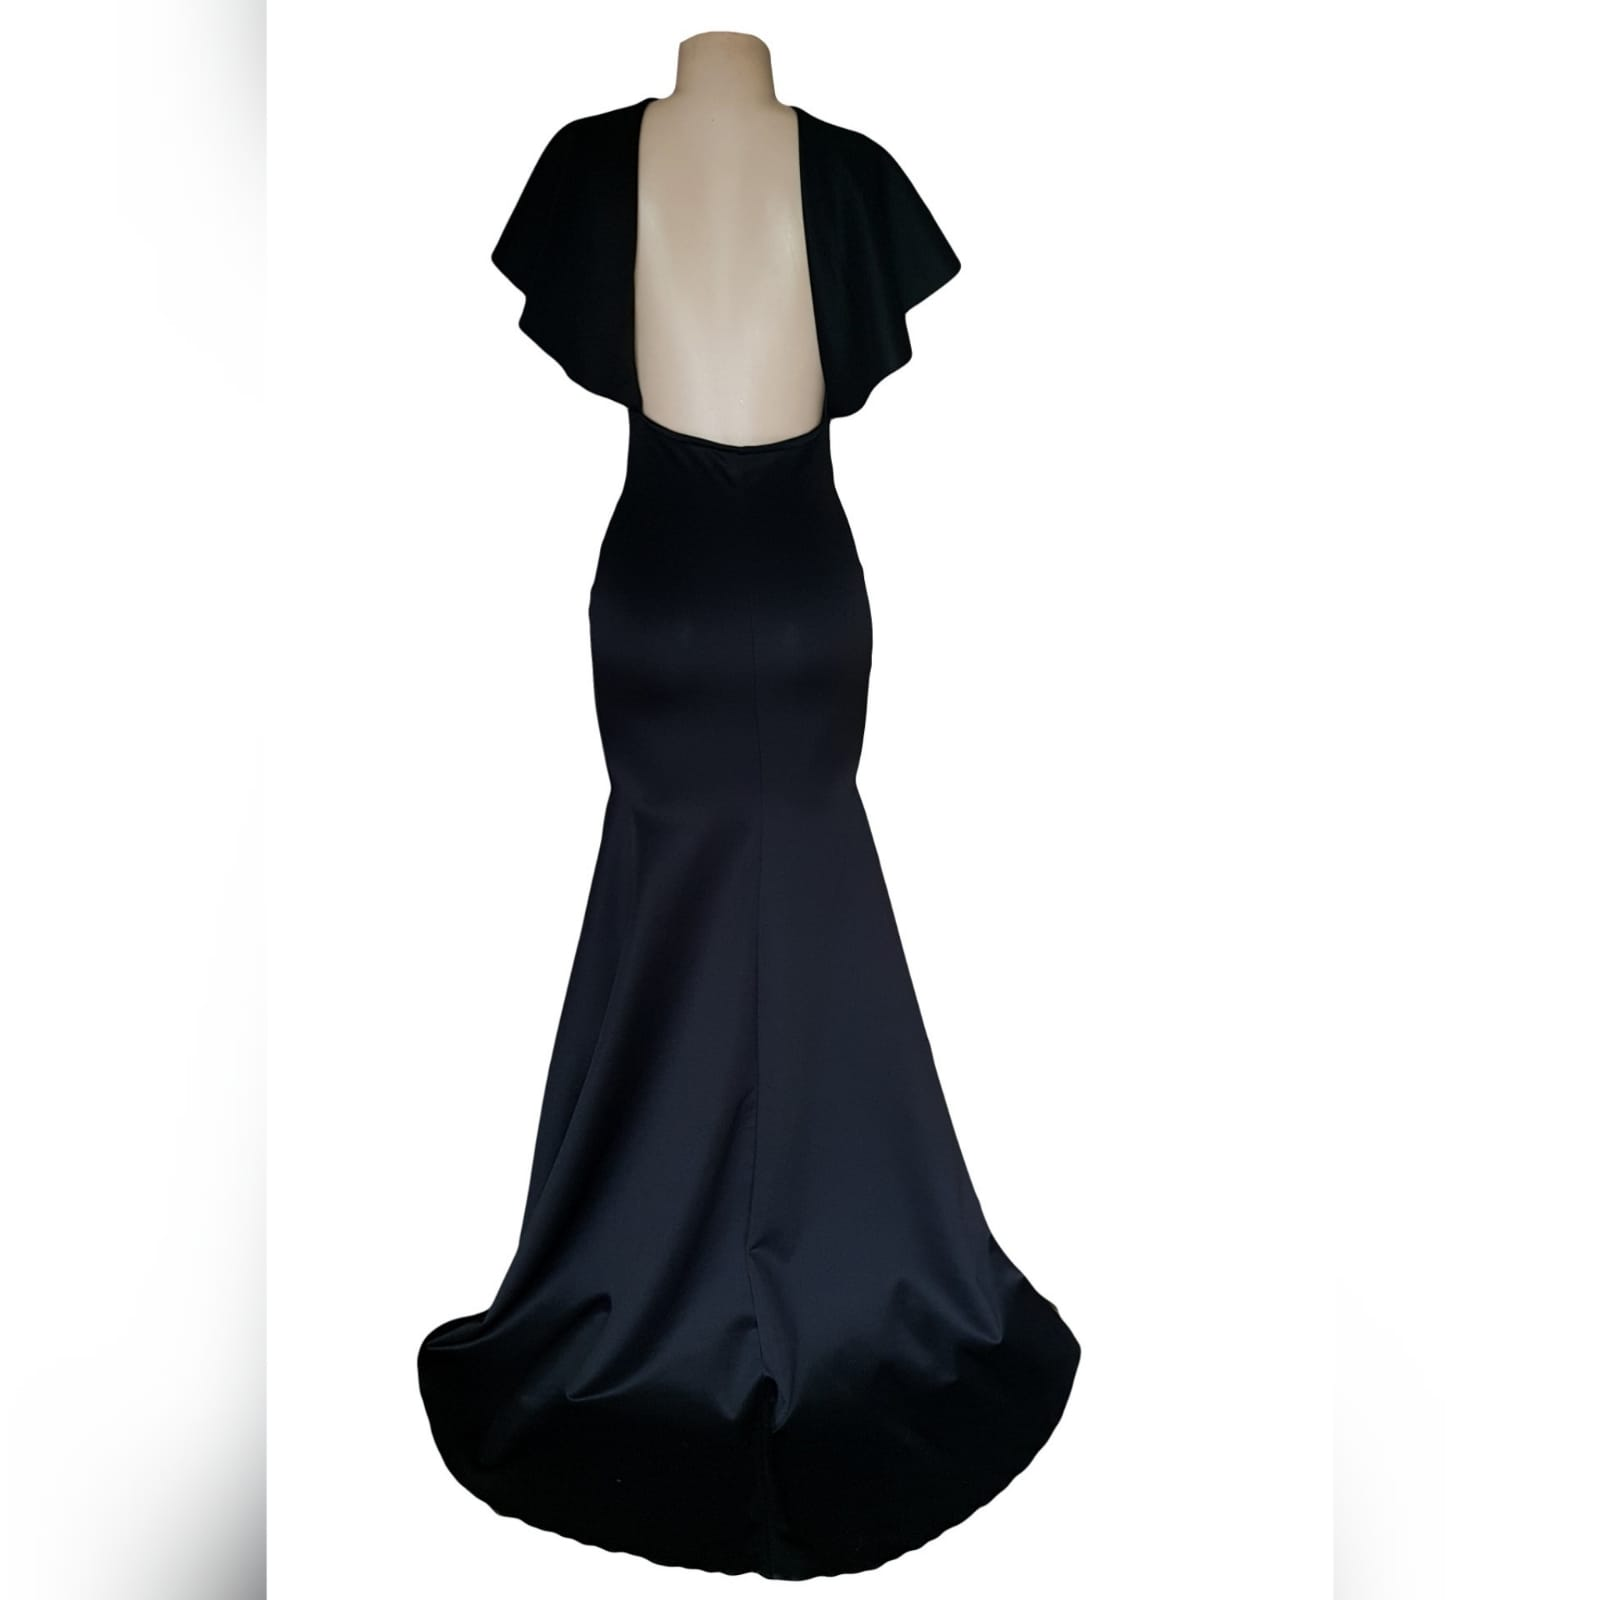 Black soft mermaid simple elegant evening dress 9 black soft mermaid simple elegant evening dress, made for prom night. With a plunging neckline, naked back, wide loose sleeves effect and a train